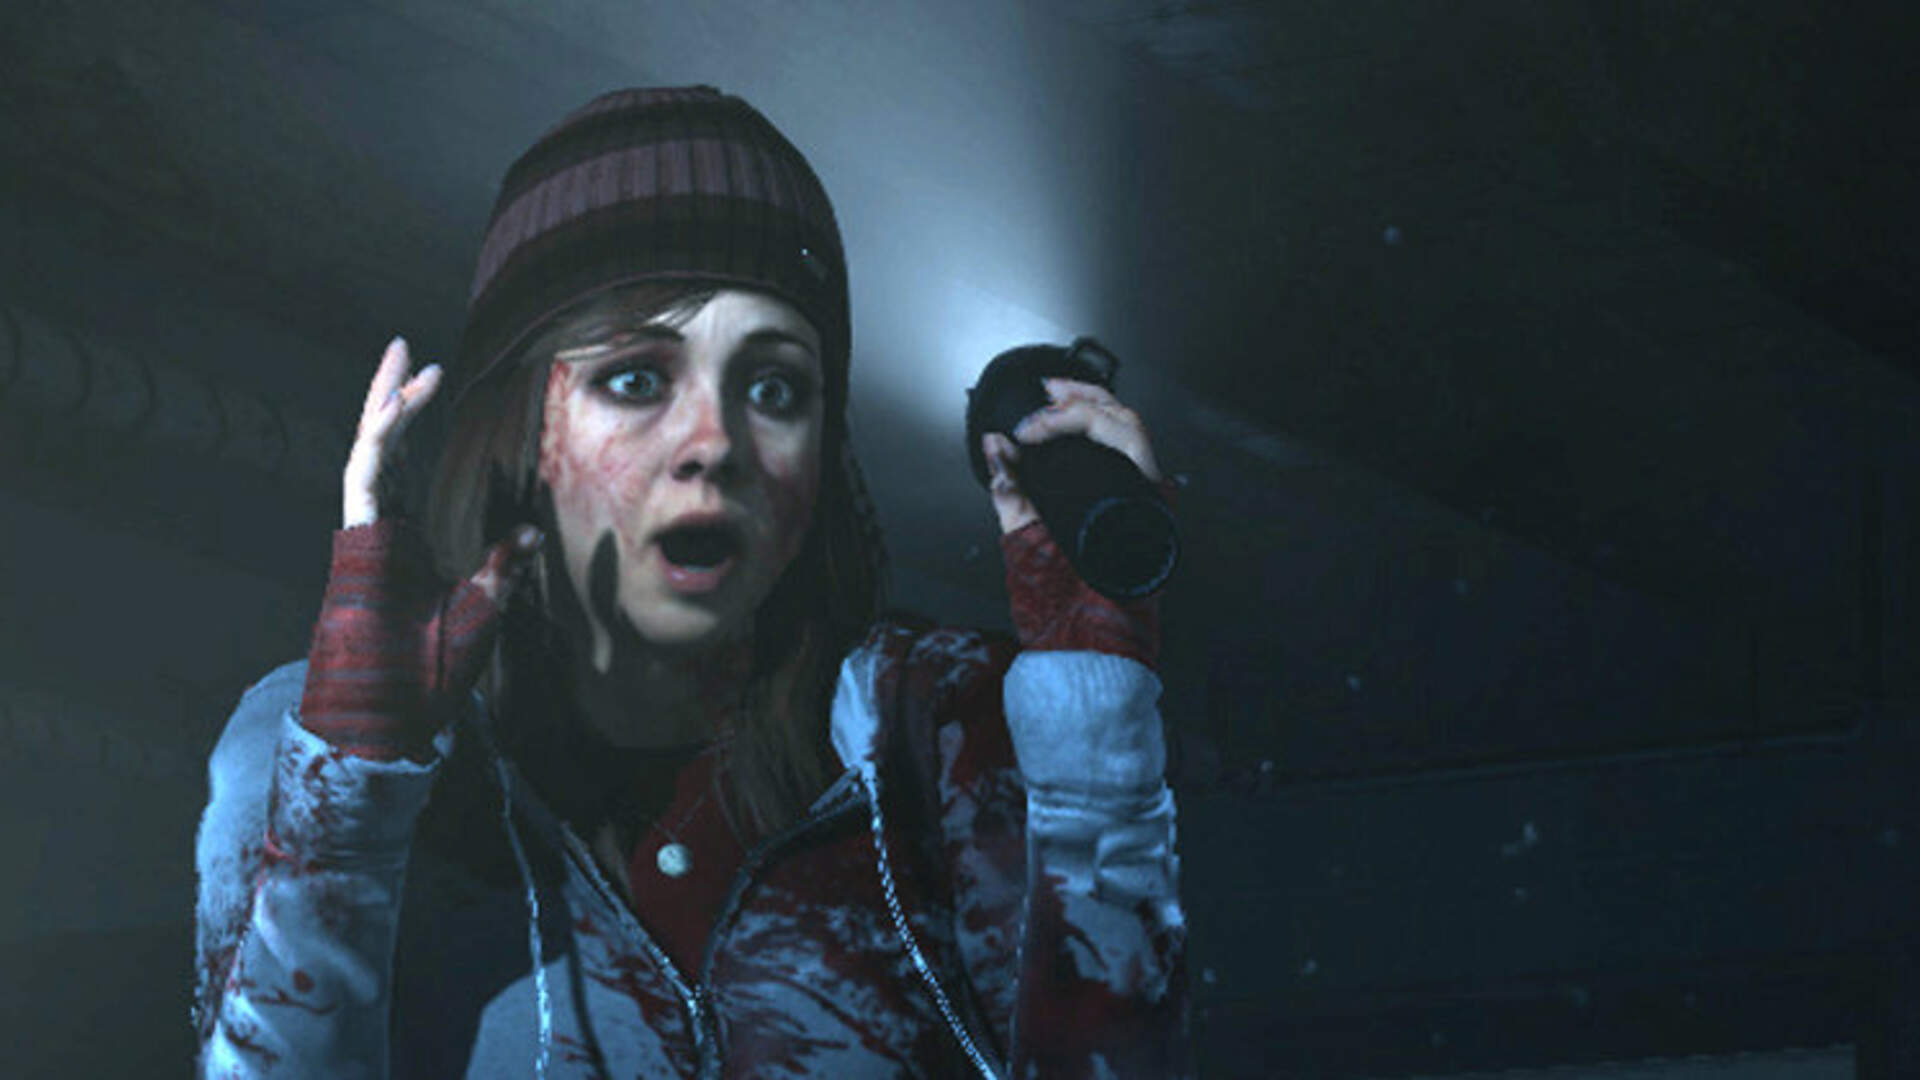 Until Dawn Walkthrough - Guide to Survive the Night, Find Totems, Butterfly Effects